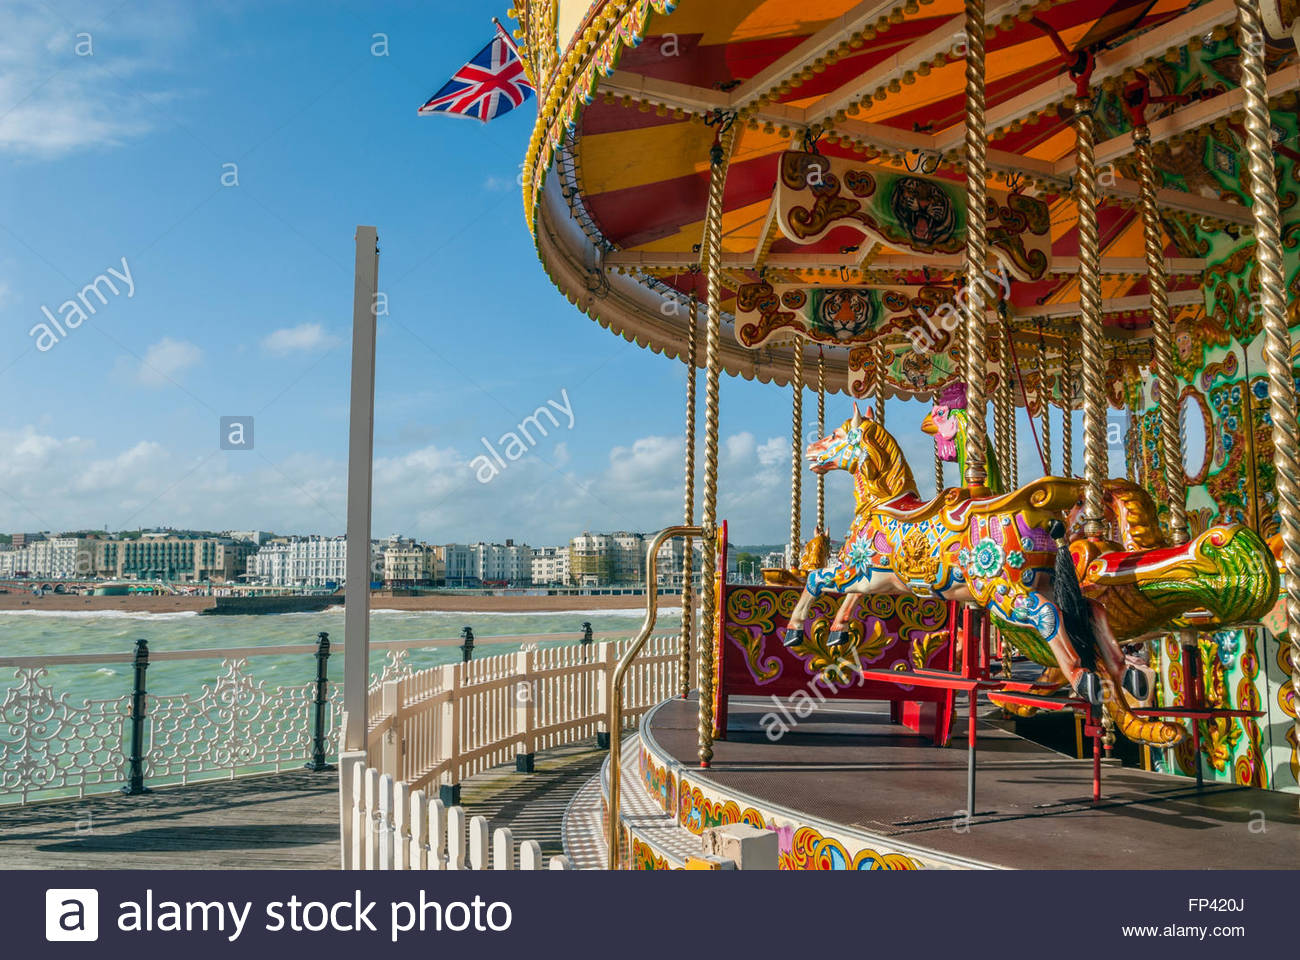 Brighton Pier merry-go-round, Brighton, East Sussex, England | Brighton Pier Karussell, Brighton, East Sussex, England - Stock Image